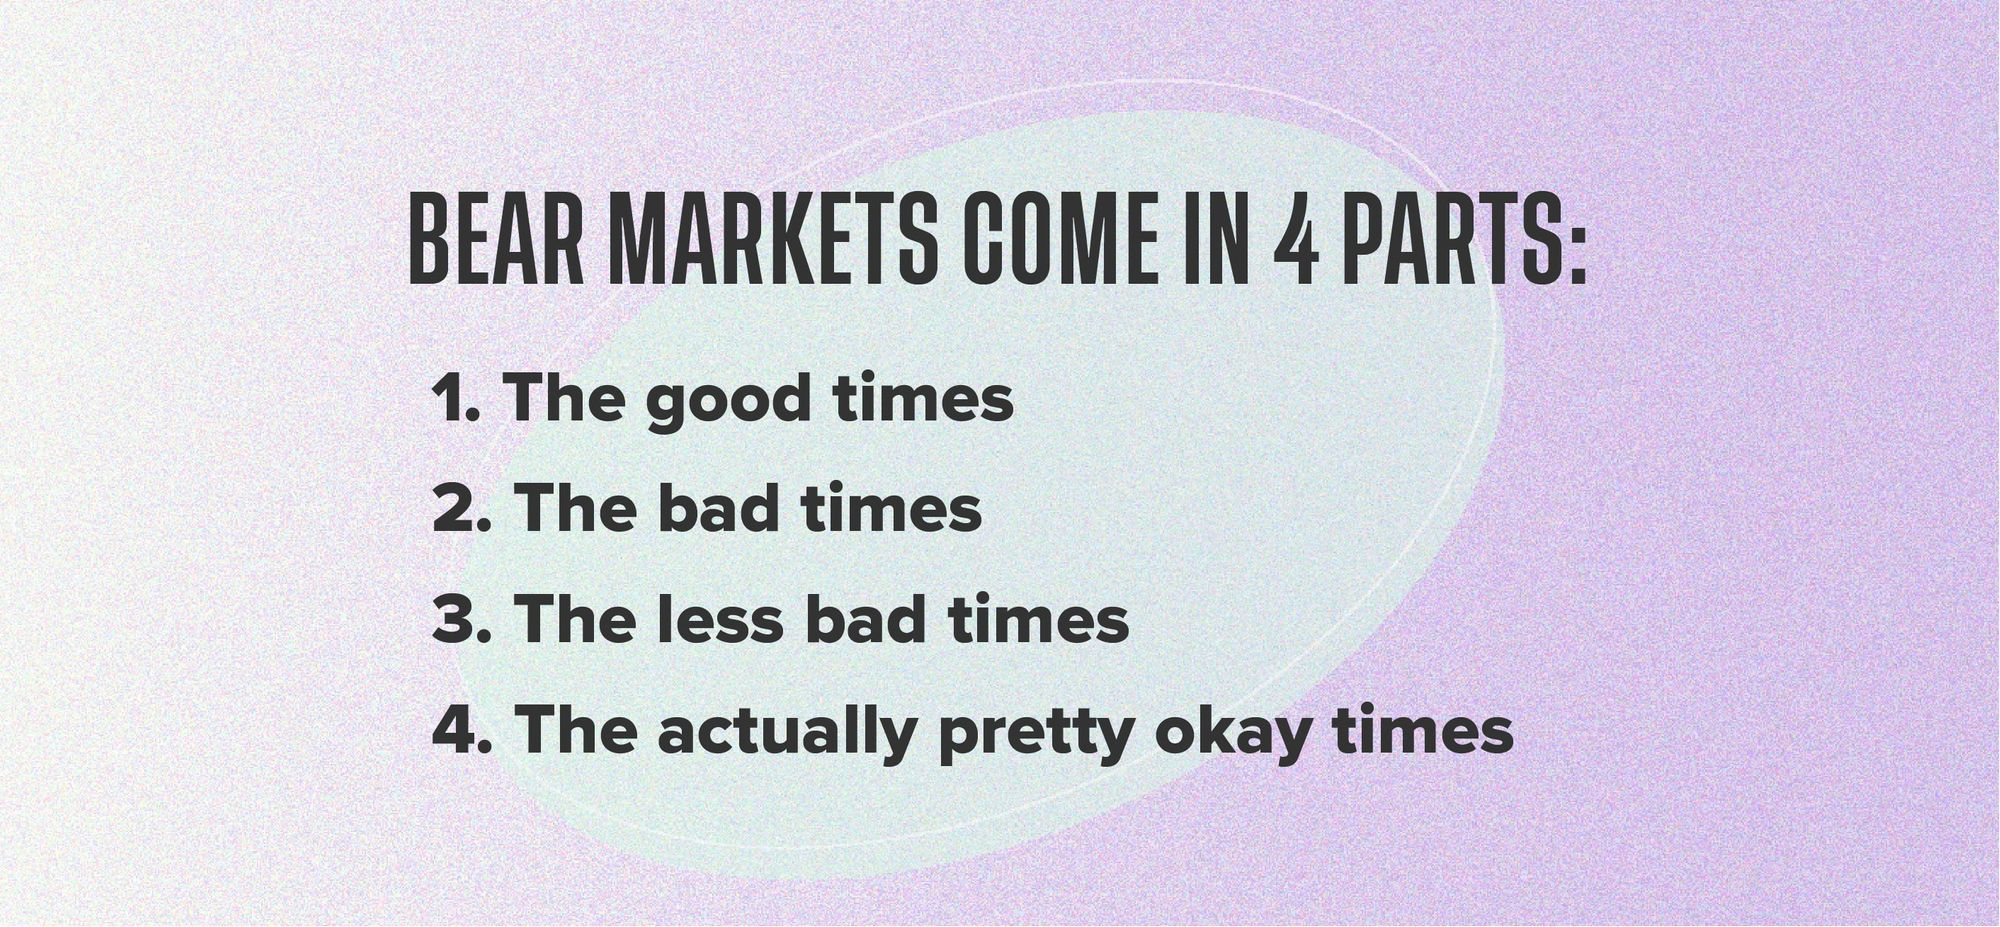 Bear Markets come in 4 parts: The good times; the bad times; the less bad times; the actually pretty okay times